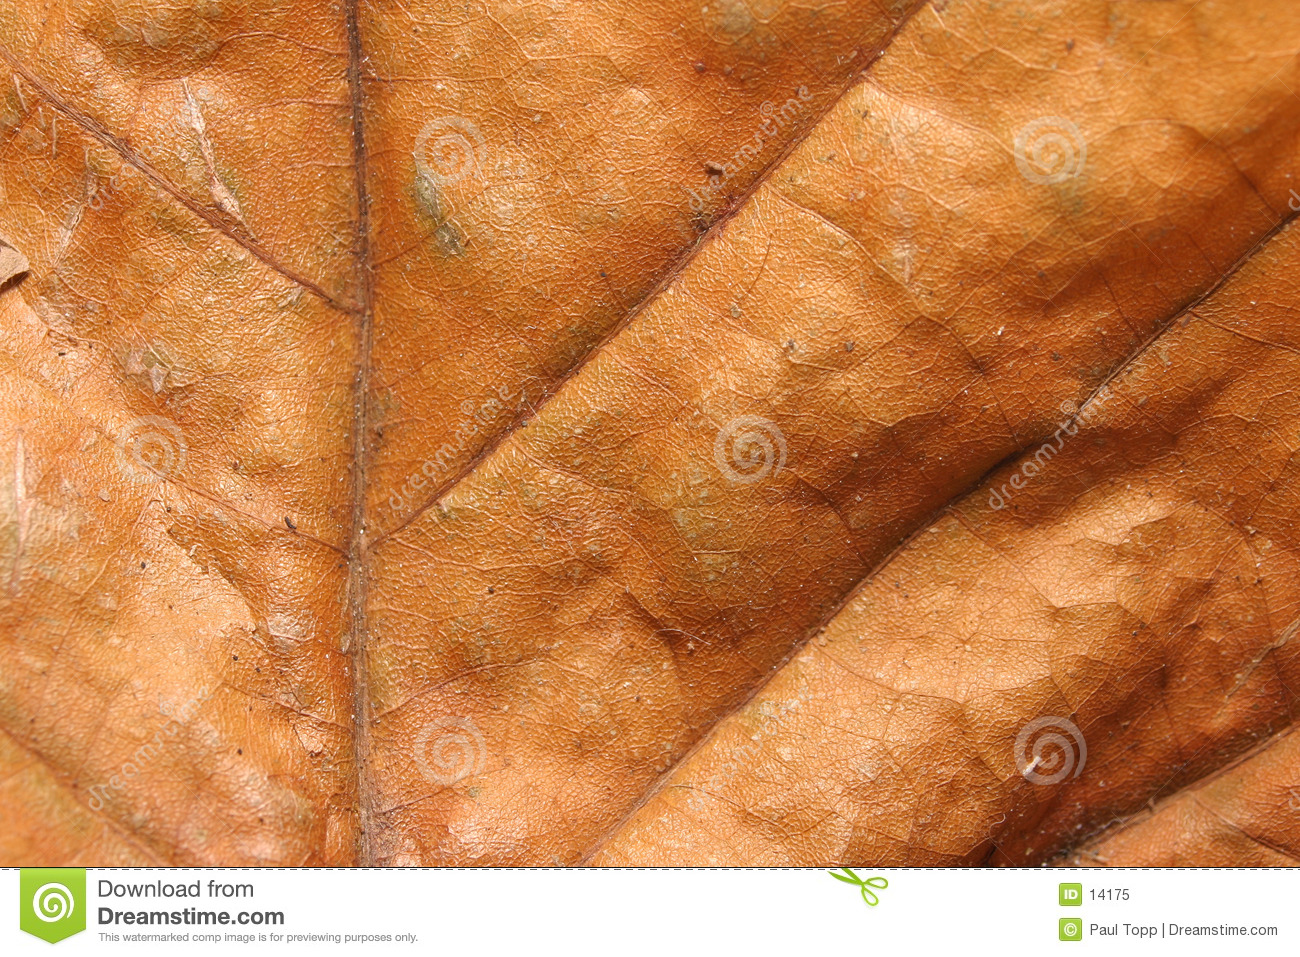 Dry Leaf Texture for Backgrounds